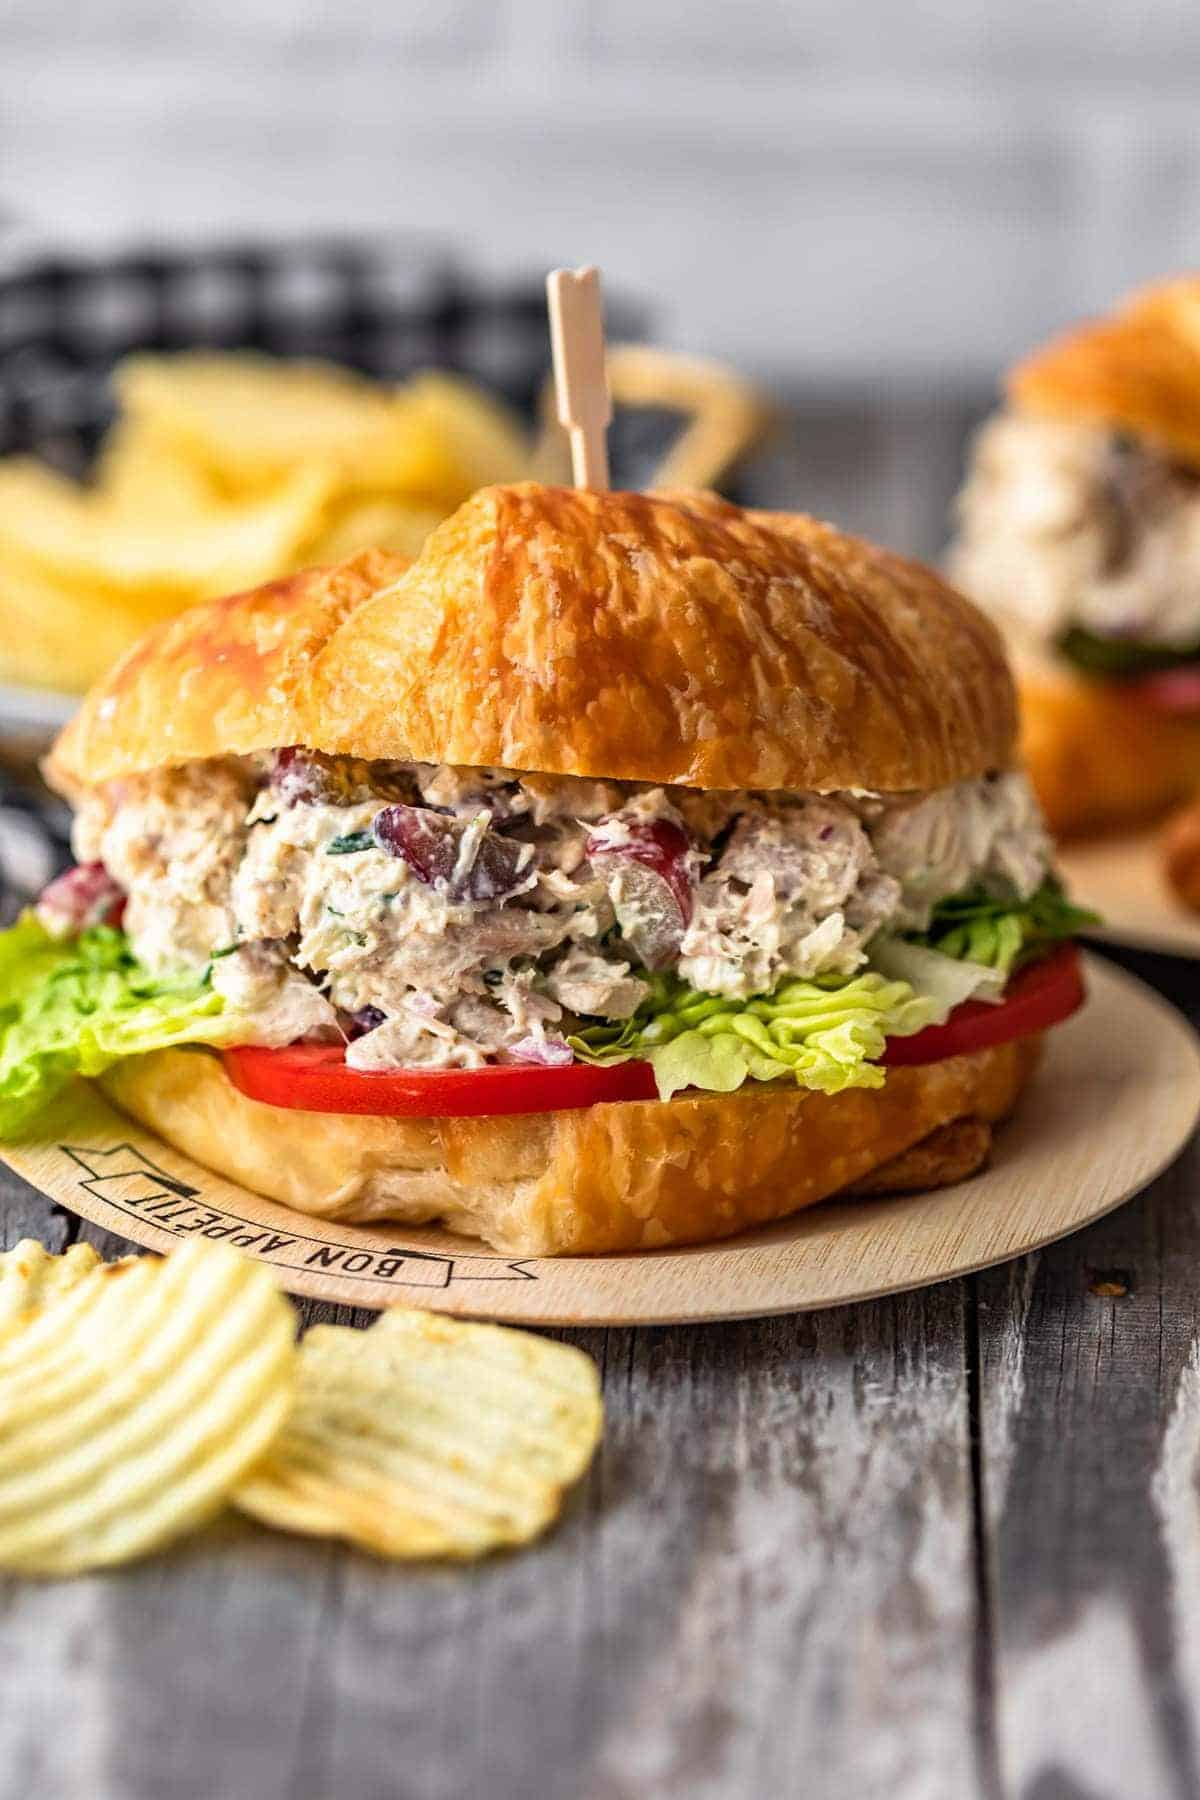 Classic Chicken Salad is the type of recipe every household loves. This Chicken Salad recipe is simple; loaded with chunks of chicken, grapes, herbs, and a creamy base. The best Summer recipe!